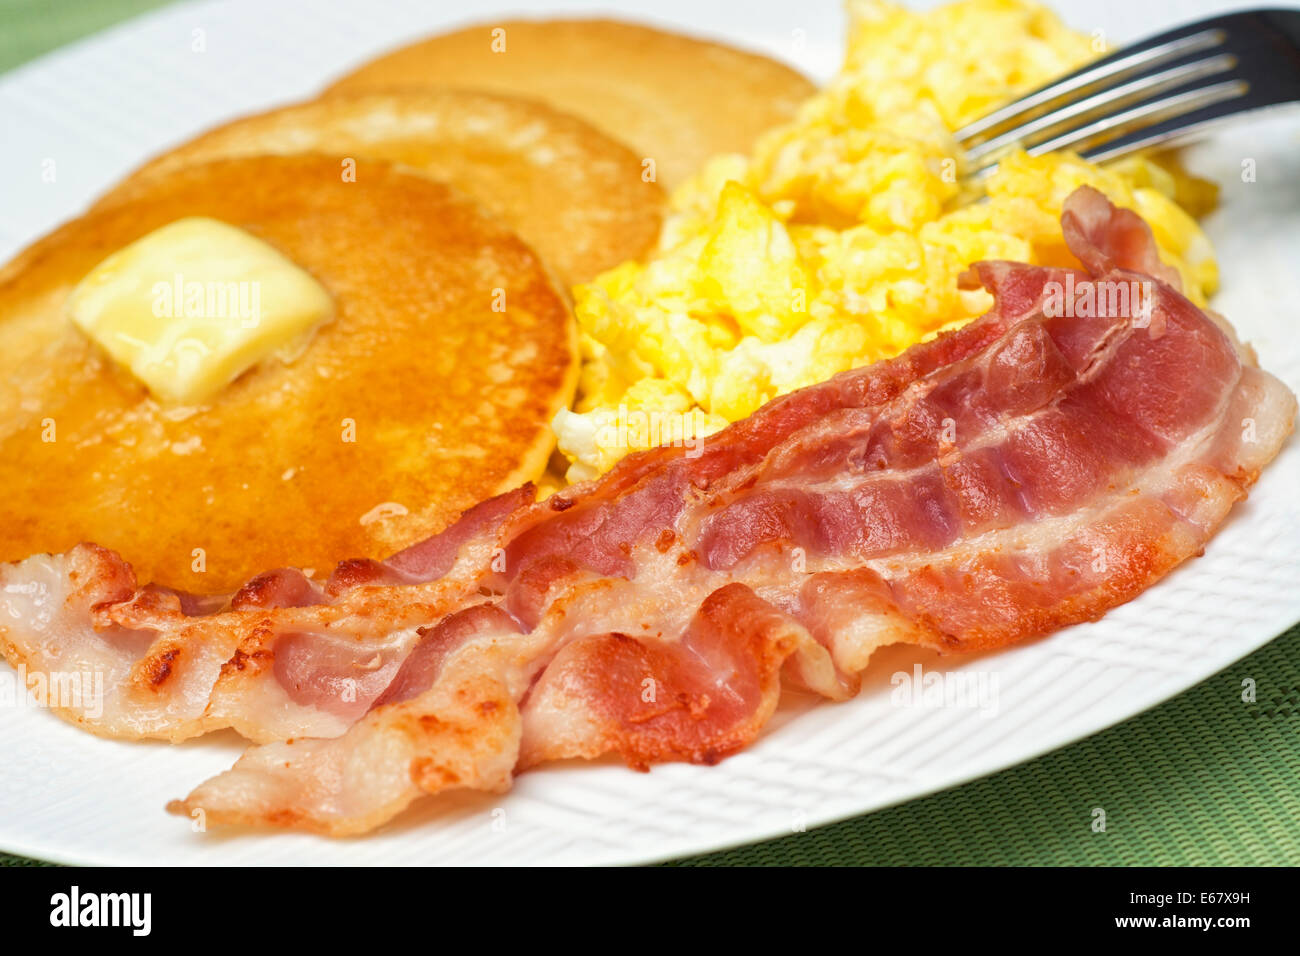 Eggs Bacon and Pancakes, Scrambled Eggs and Pancake Breakfast - Stock Image